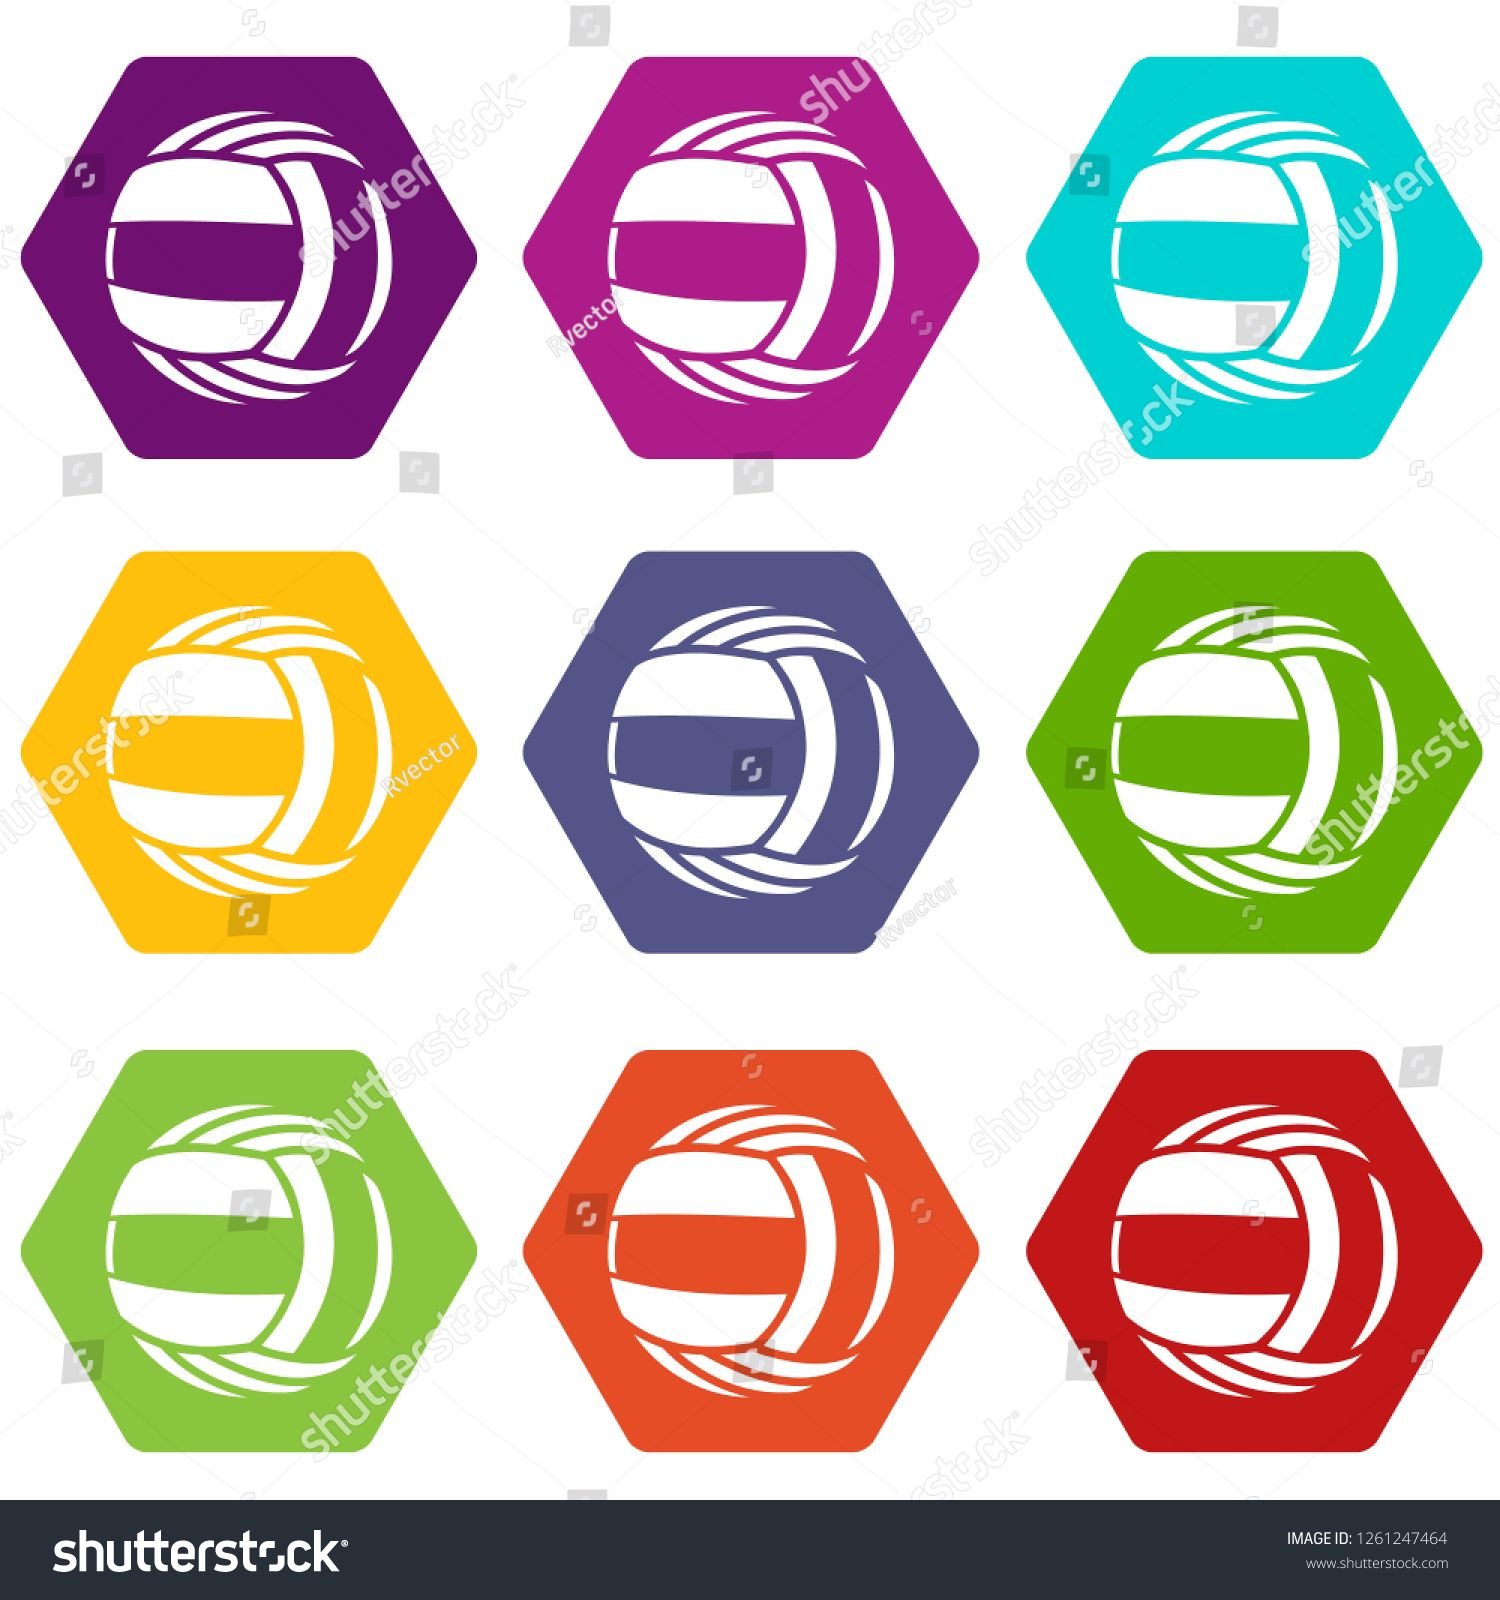 Volleyball icons 9 set coloful isolated on white for web #Ad , #SPONSORED, #set#icons#Volleyball#coloful